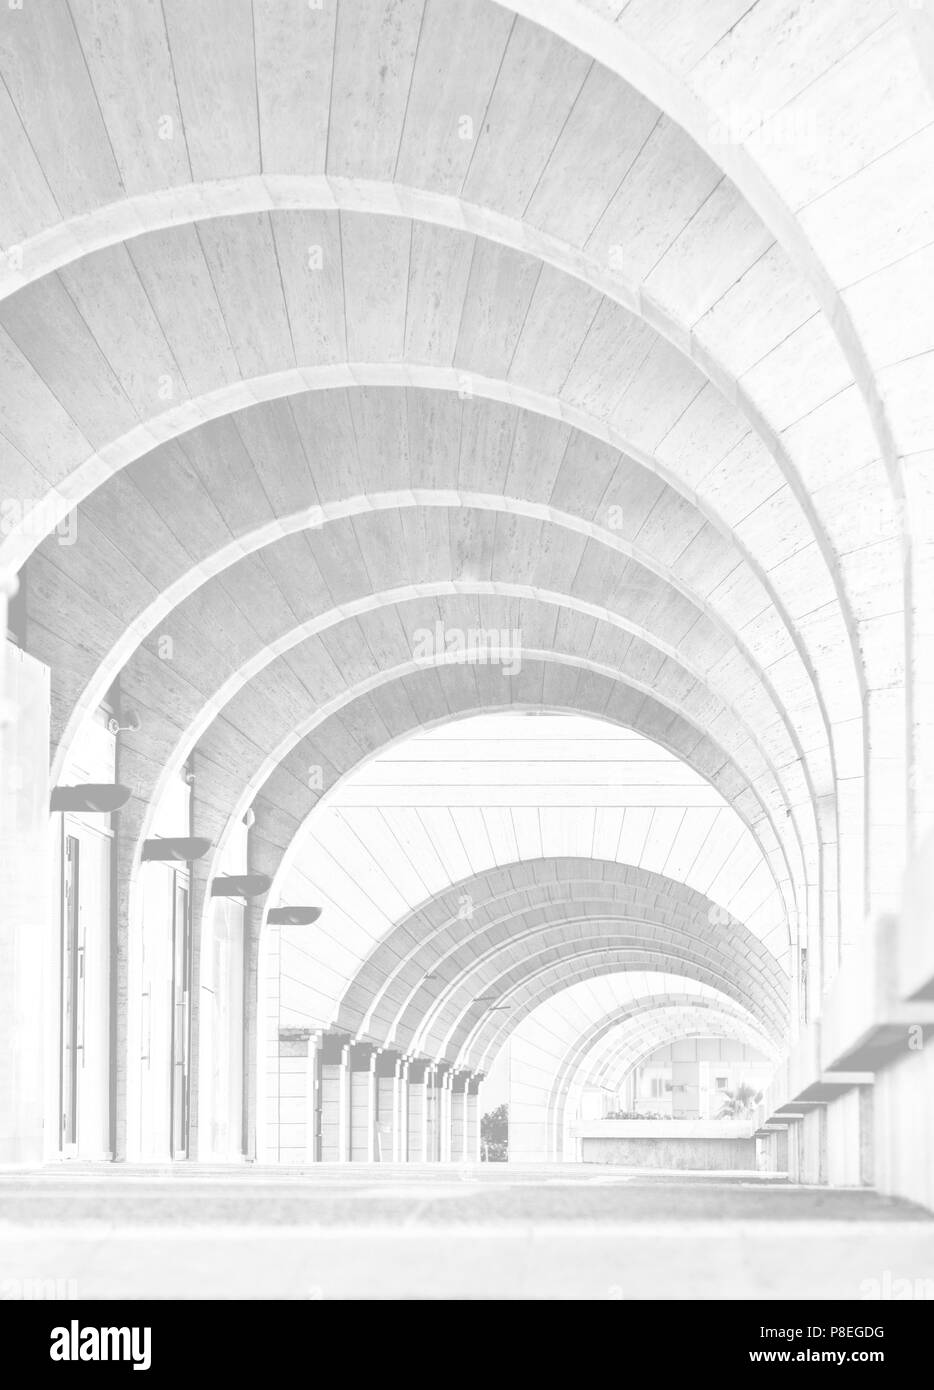 Tel Aviv, Israel - APRIL 28, 2018: Contemporary Architecture: Archway Arcade Modern building,architecture photography in Hi-Key - Stock Image